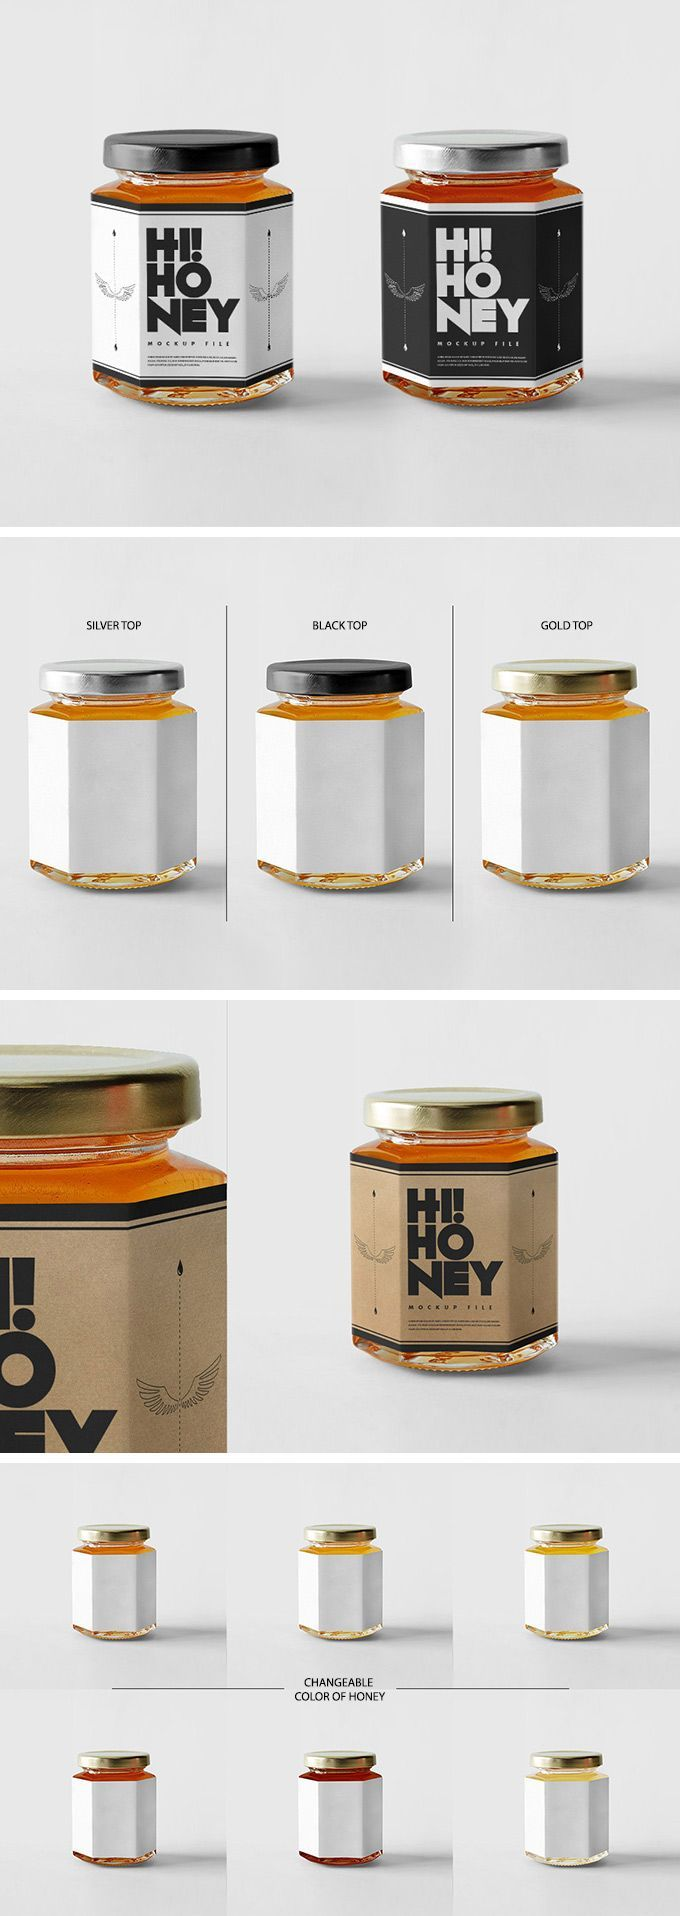 Honey Jar Mockup - download freebie by PixelBuddha                                                                                                                                                                                 More